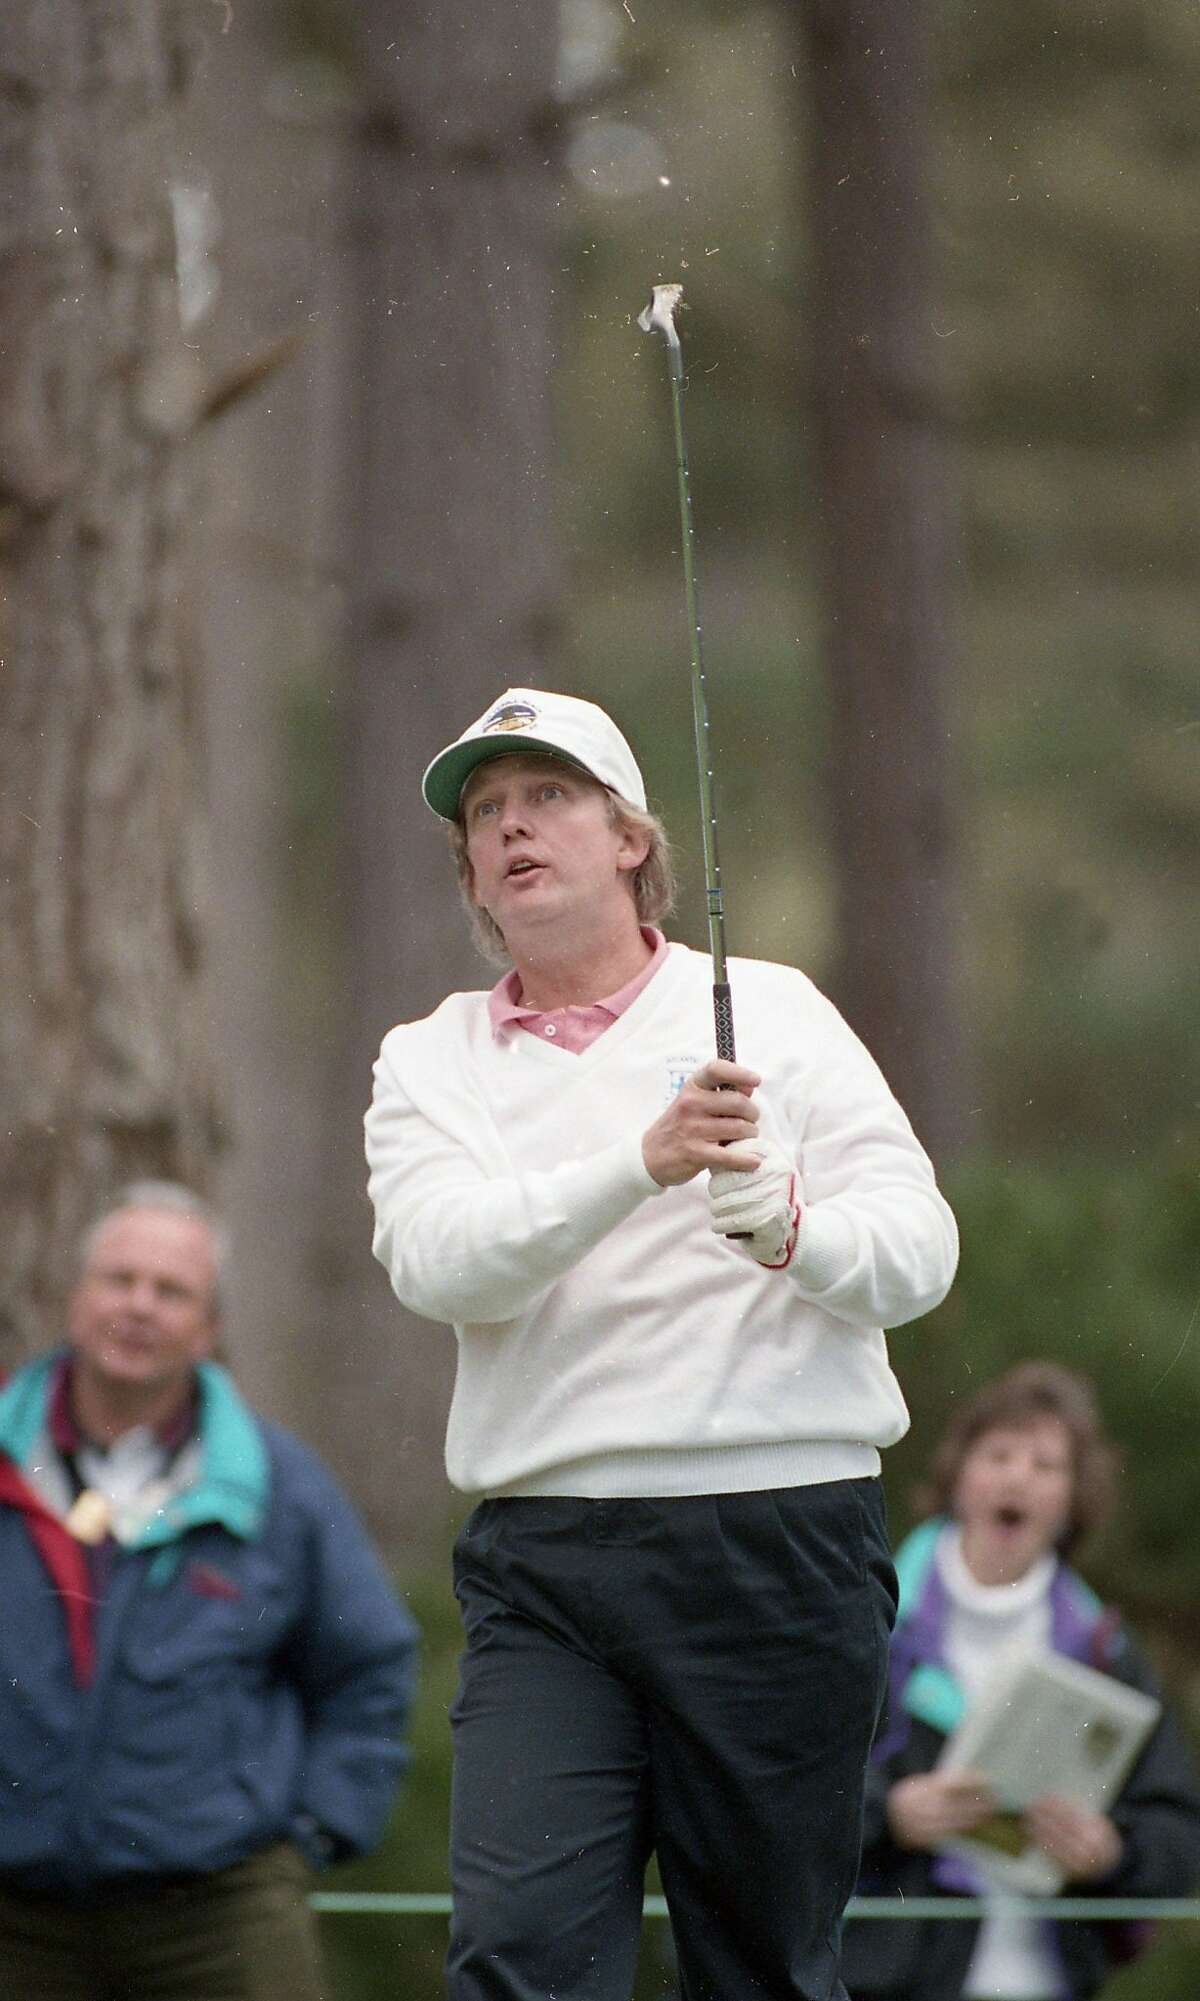 Feb. 5, 1993: Donald Trump plays at the Spyglass course in the AT&T Pebble Beach Pro-Am in 1993. He hit a hole-in-one on the 12th hole.